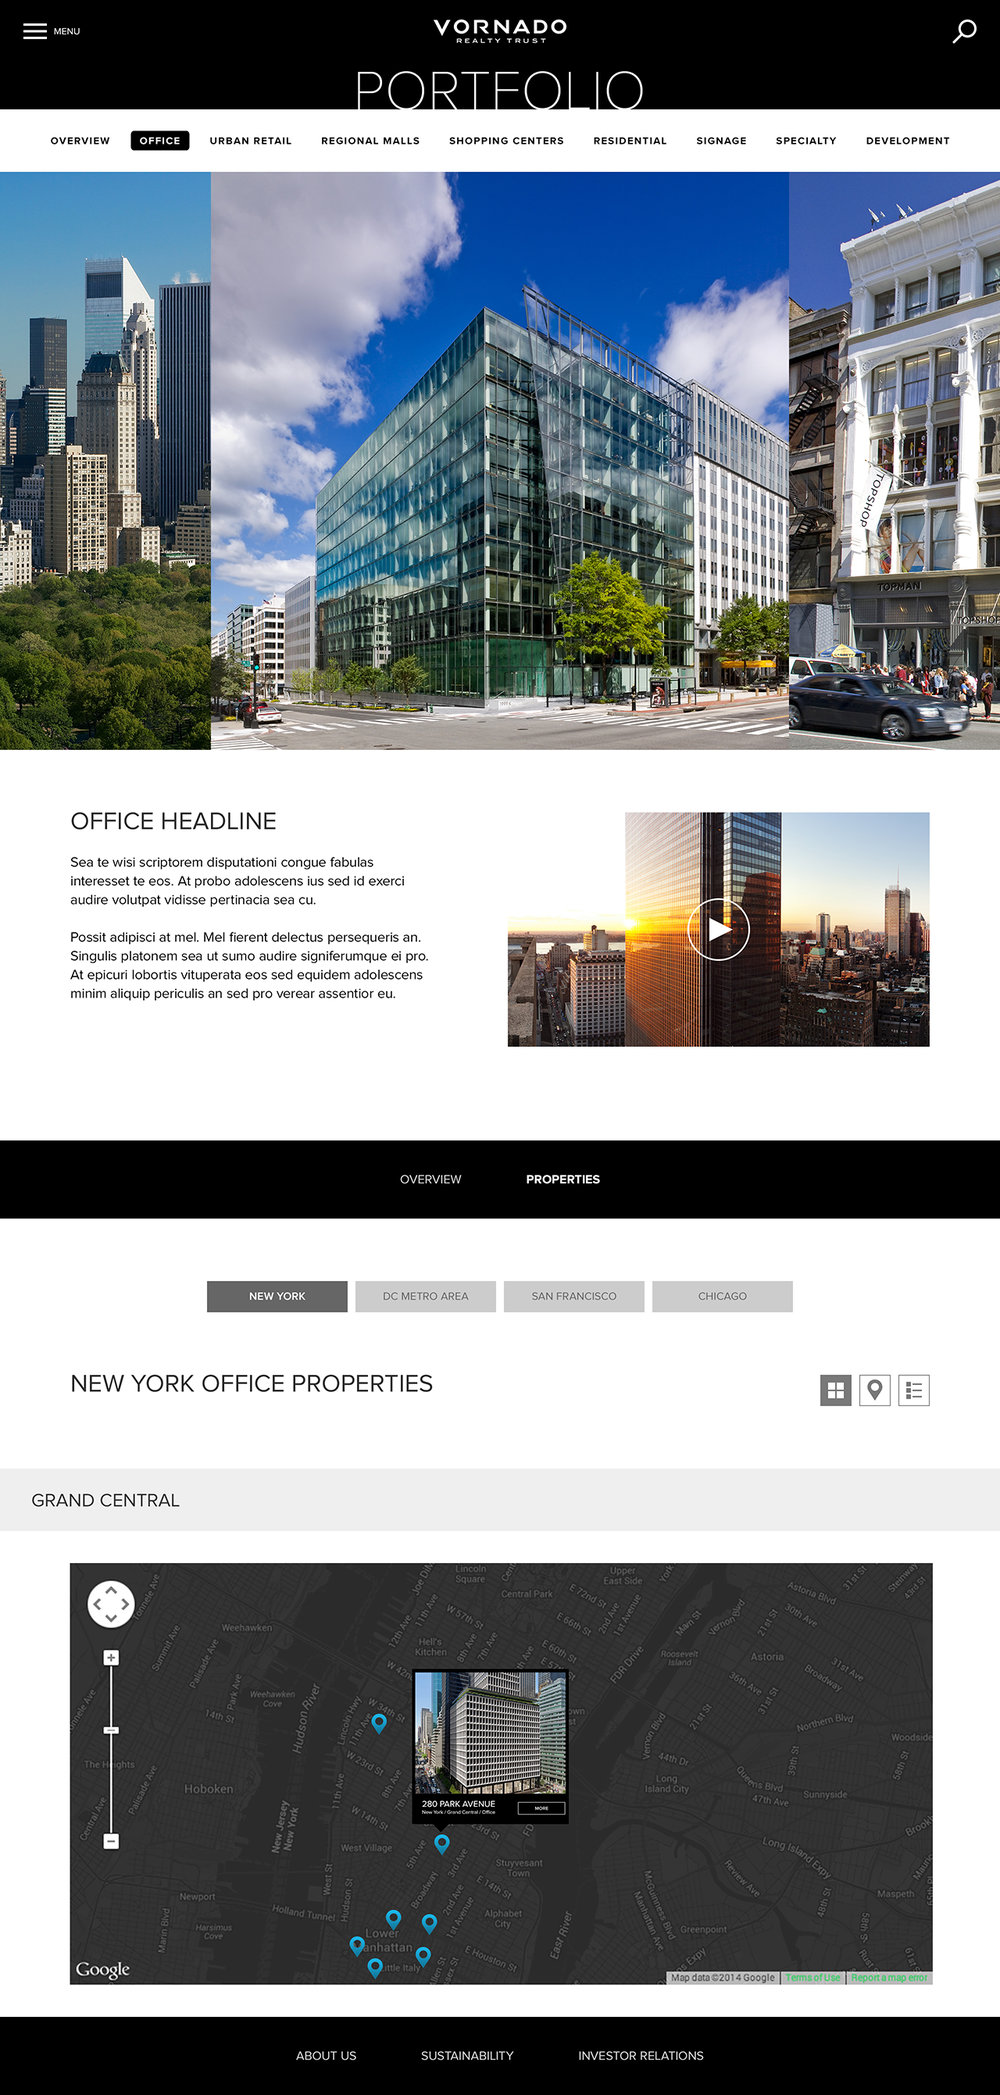 VNO_Portfolio_Office_Properties_NewYork_Map_v3.jpg